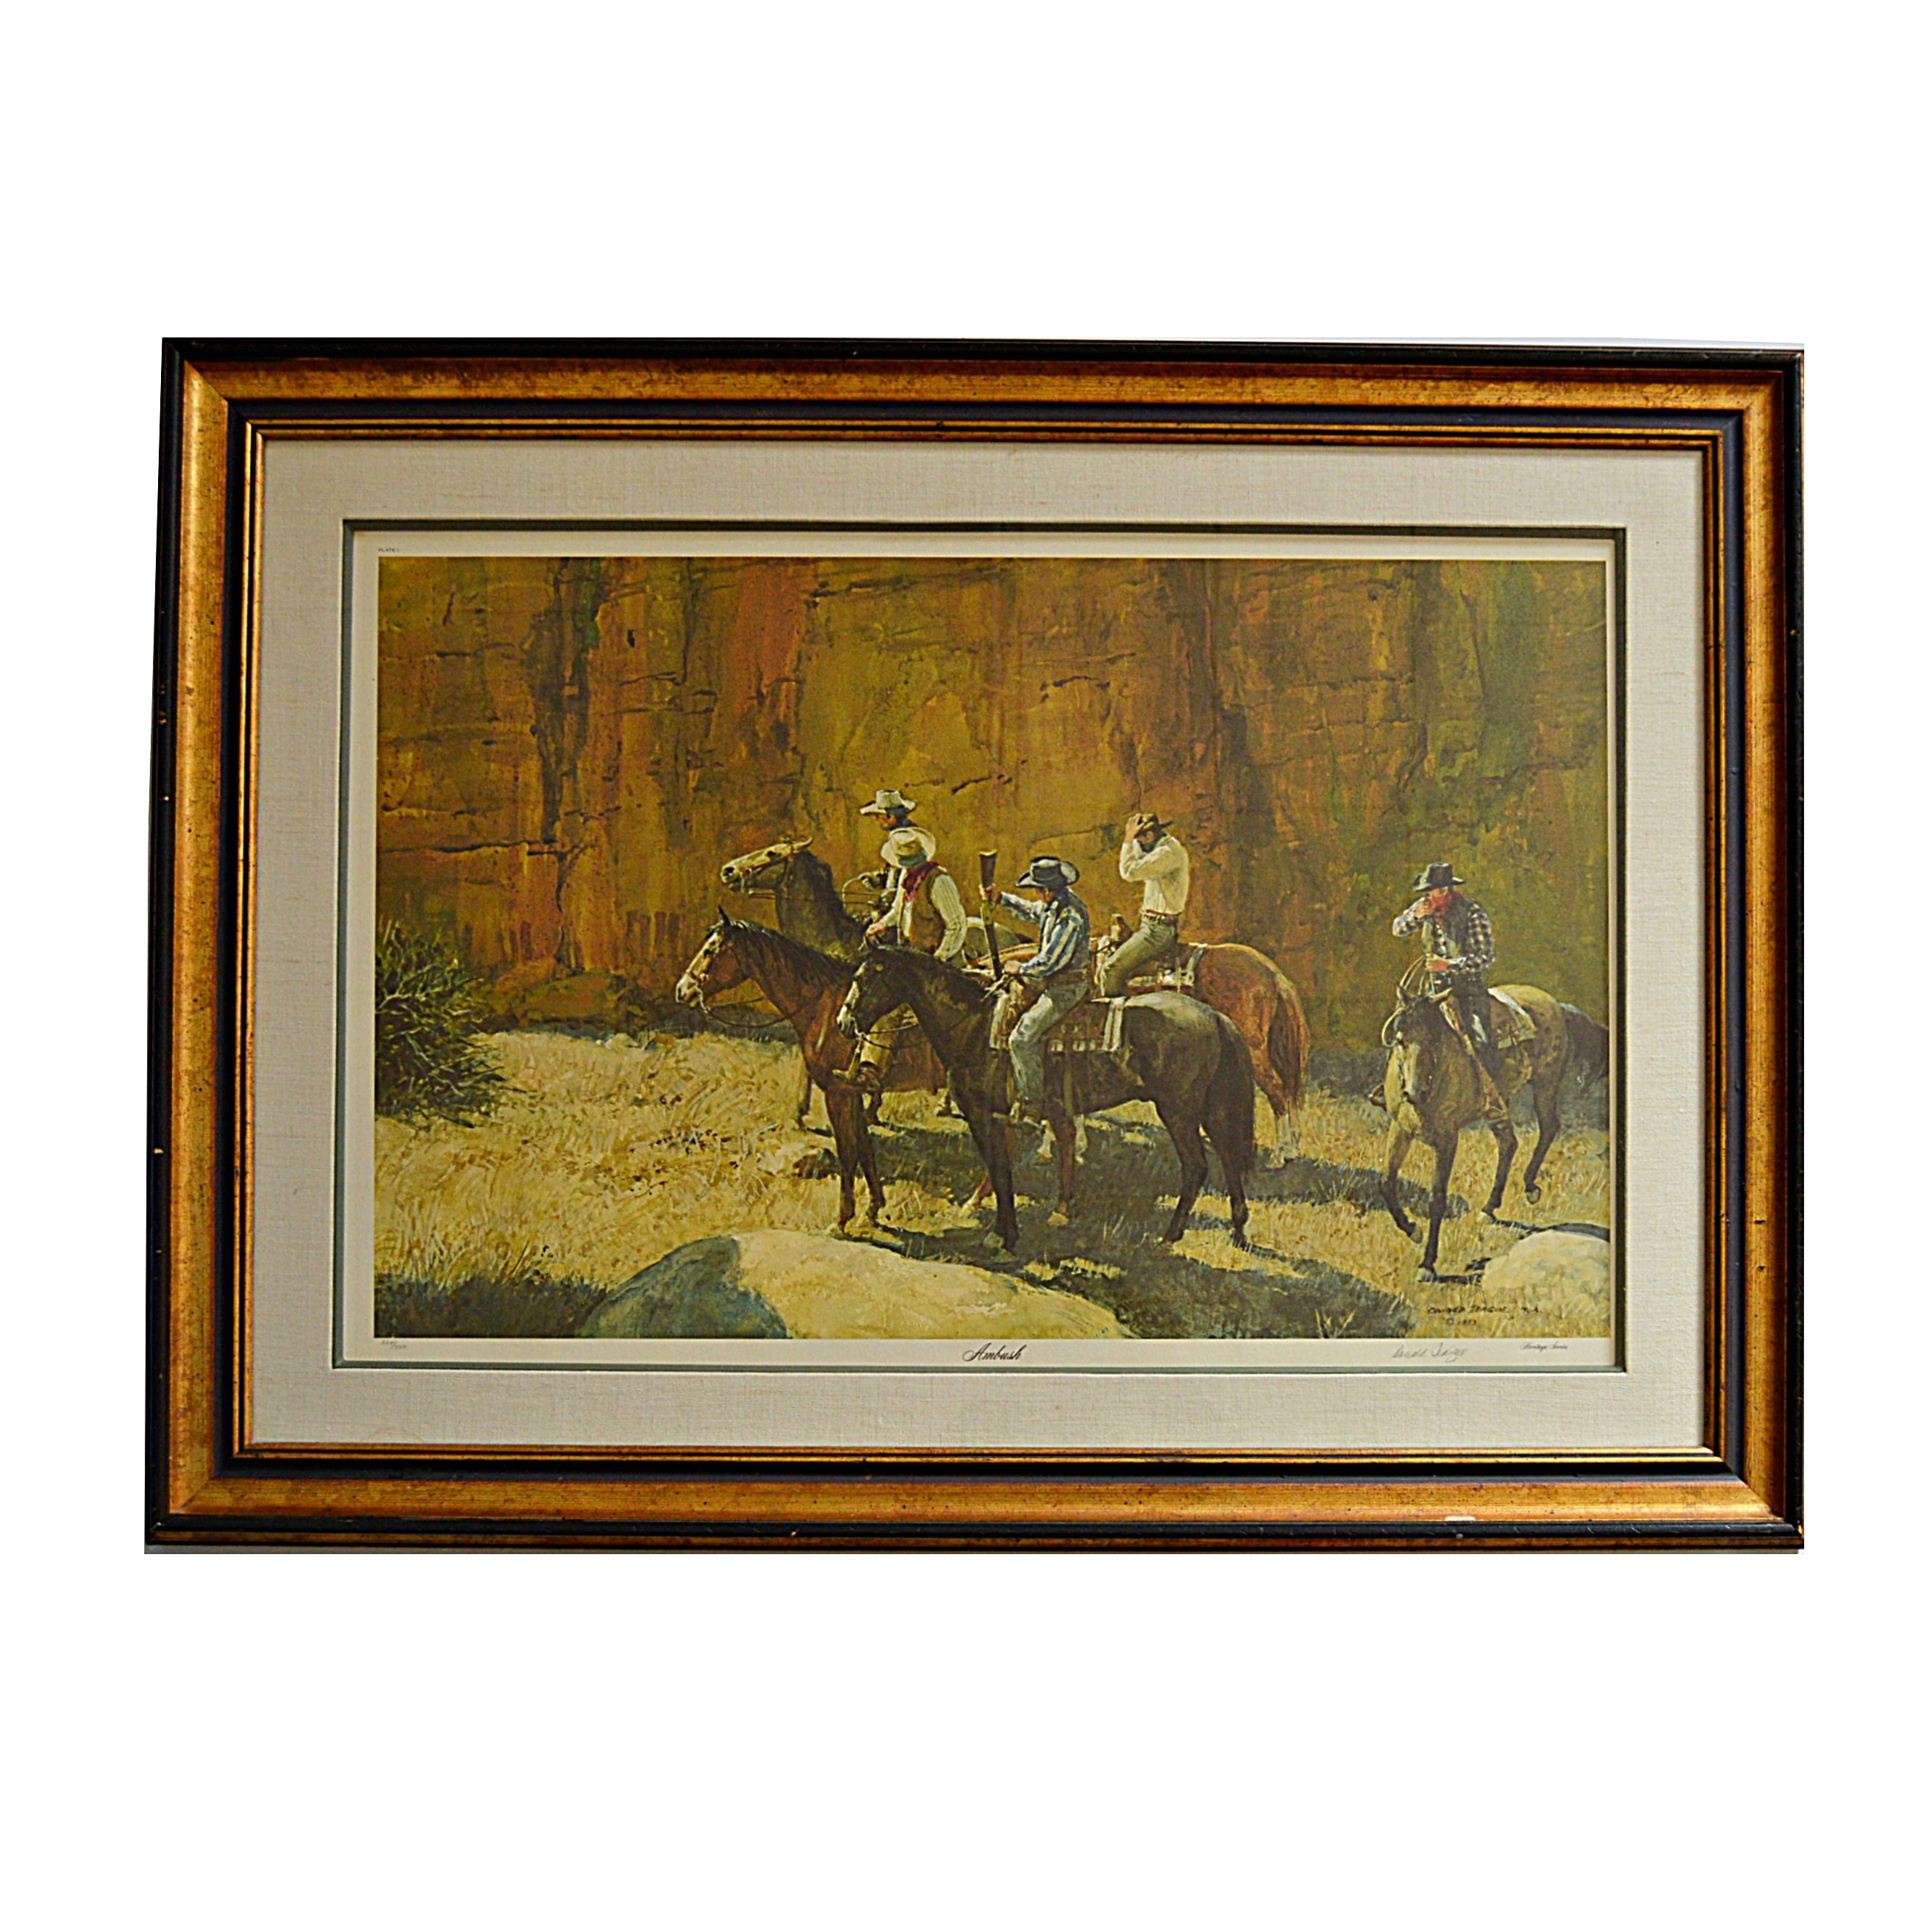 "Signed Limited Edition Offset Lithograph after ""Ambush"" by Donald Teague"